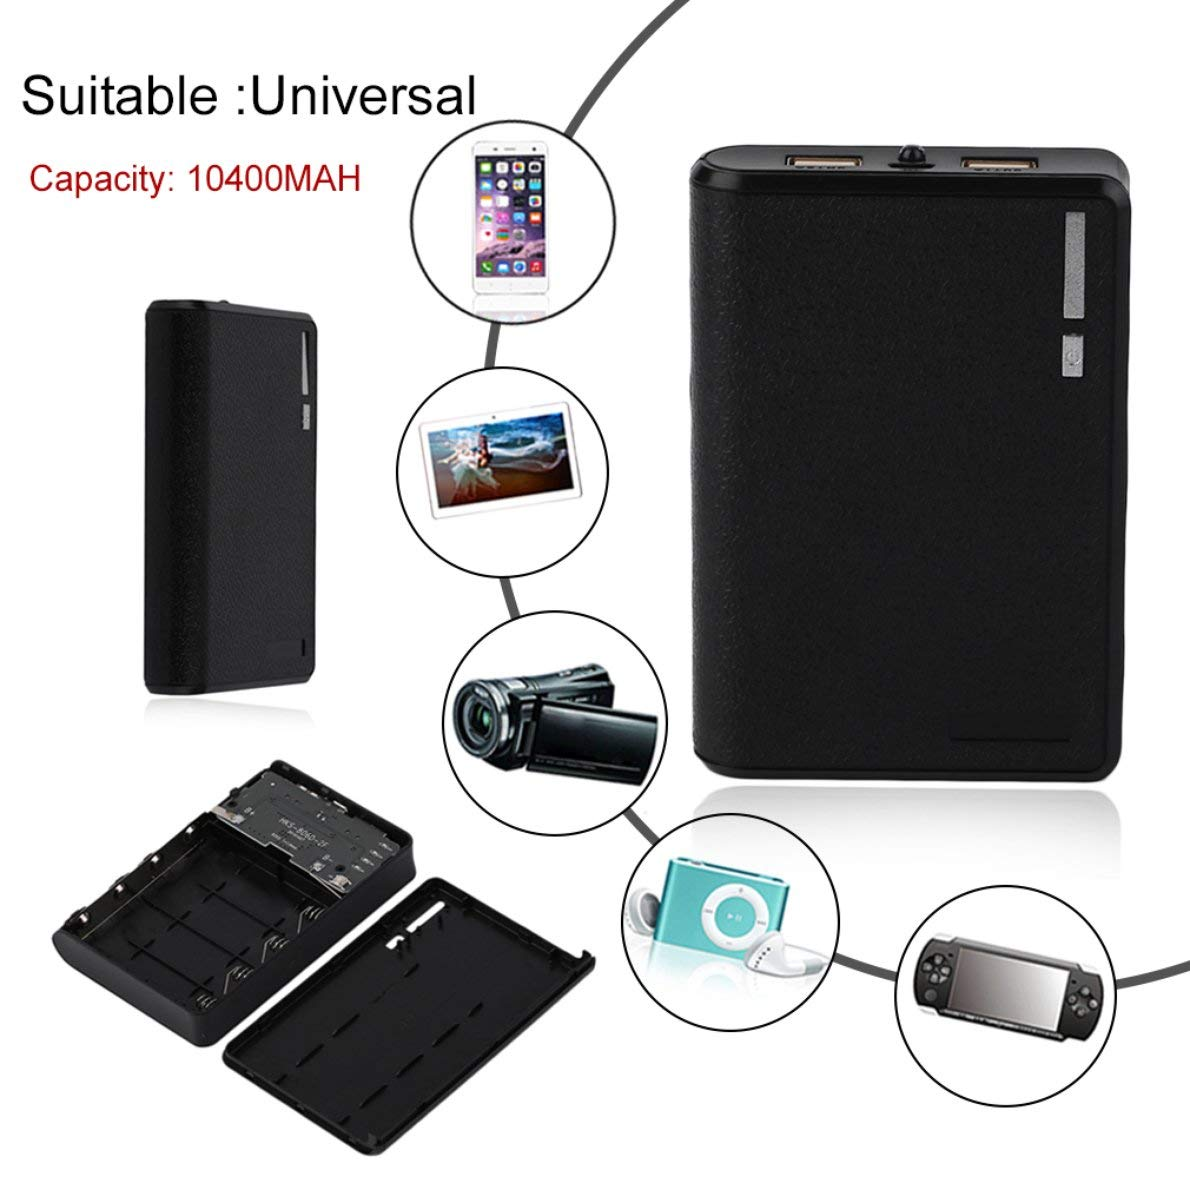 18650 Battery External Power Bank Mobile Phone Battery Charger Suitable for iPhone Uqiangbao Large Capacity 10400MAH Portable Size 4